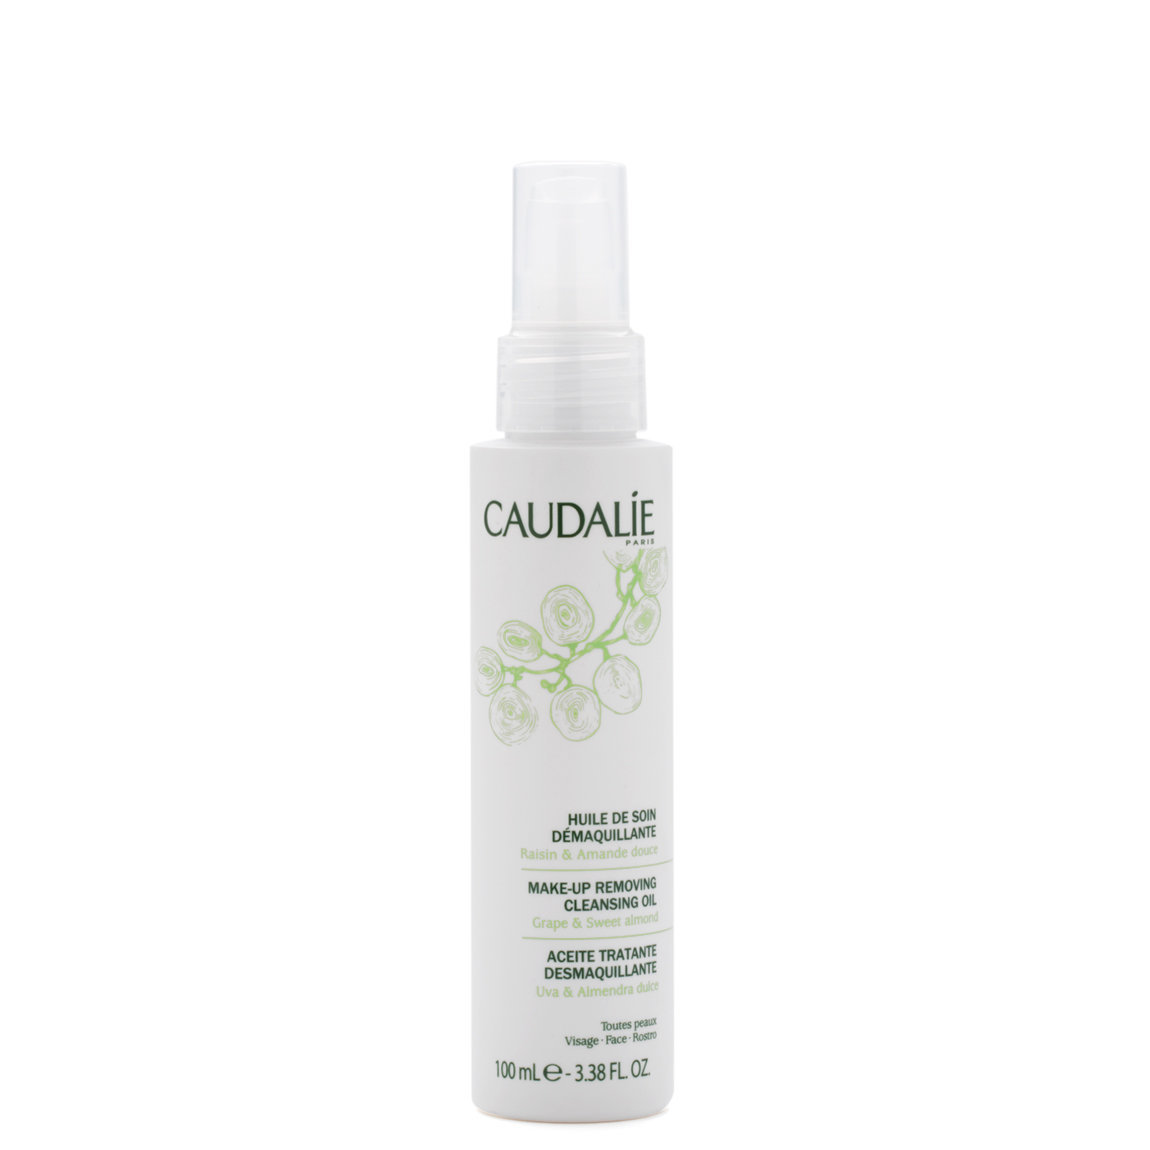 Caudalie Make-Up Removing Cleansing Oil product smear.